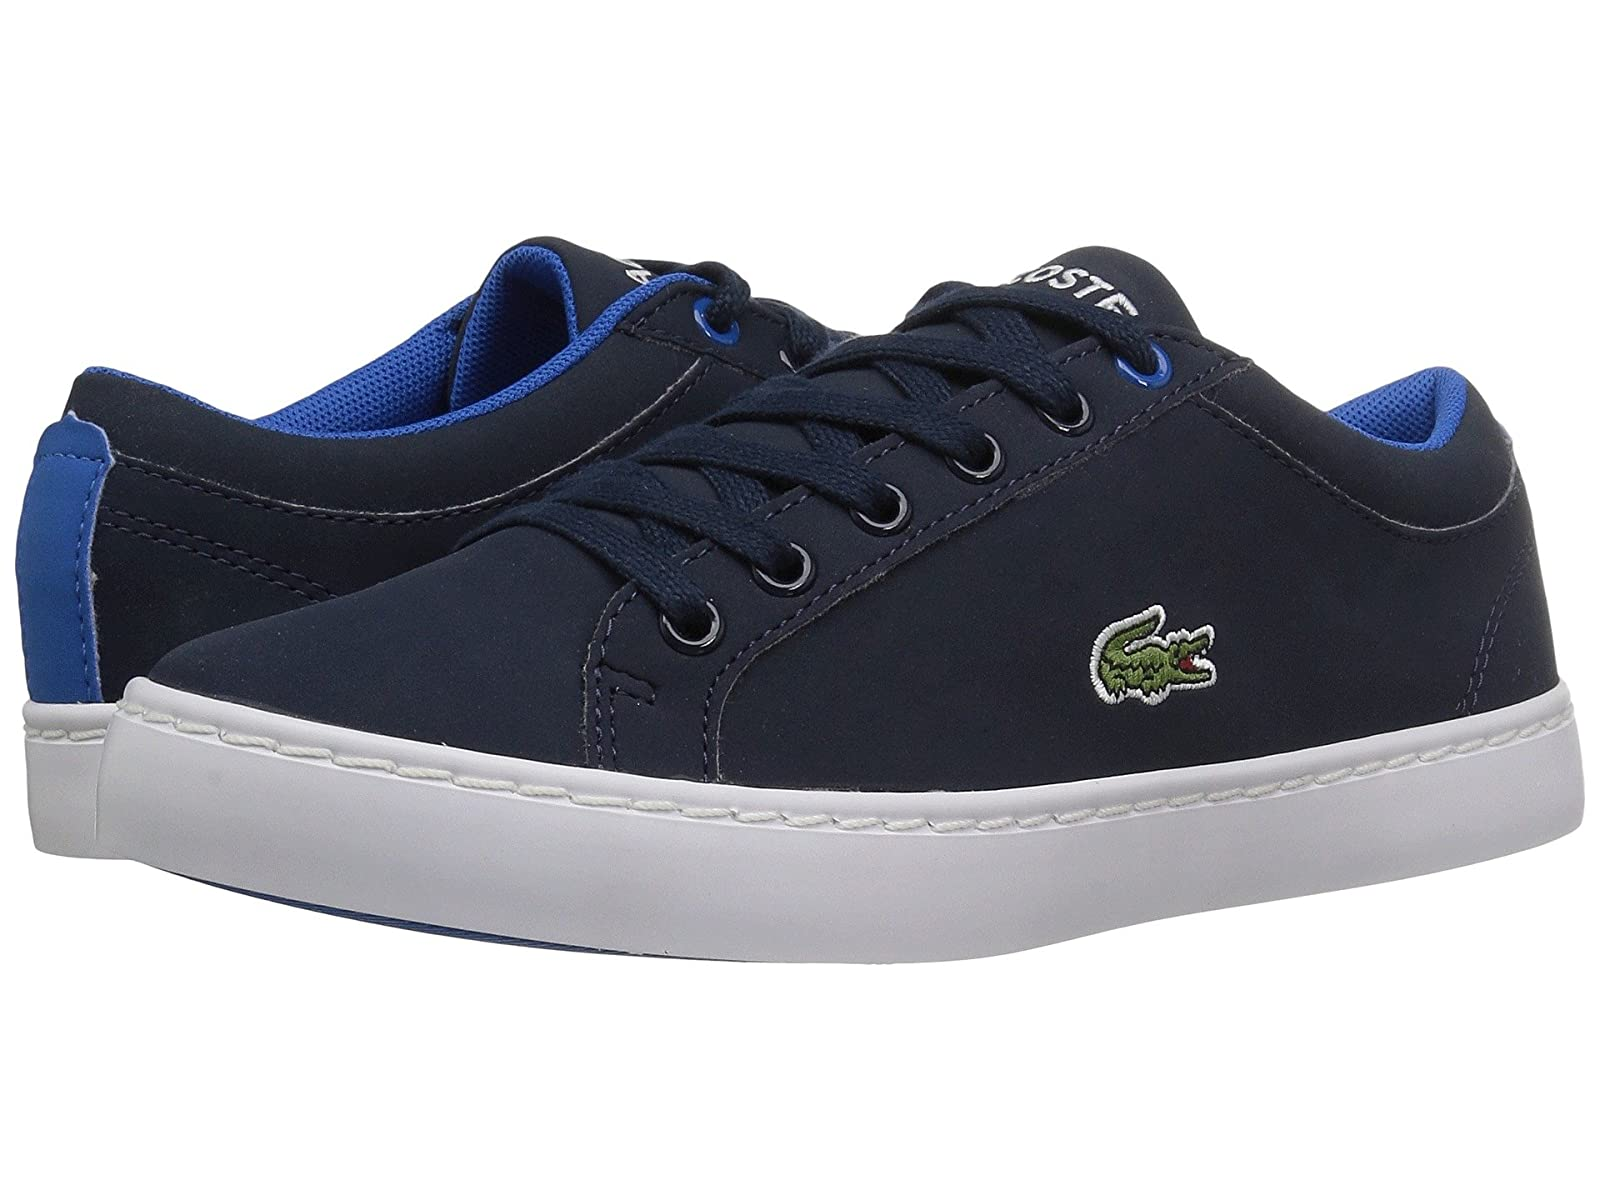 Lacoste Kids Straightset (Little Kid/Big Kid)Cheap and distinctive eye-catching shoes